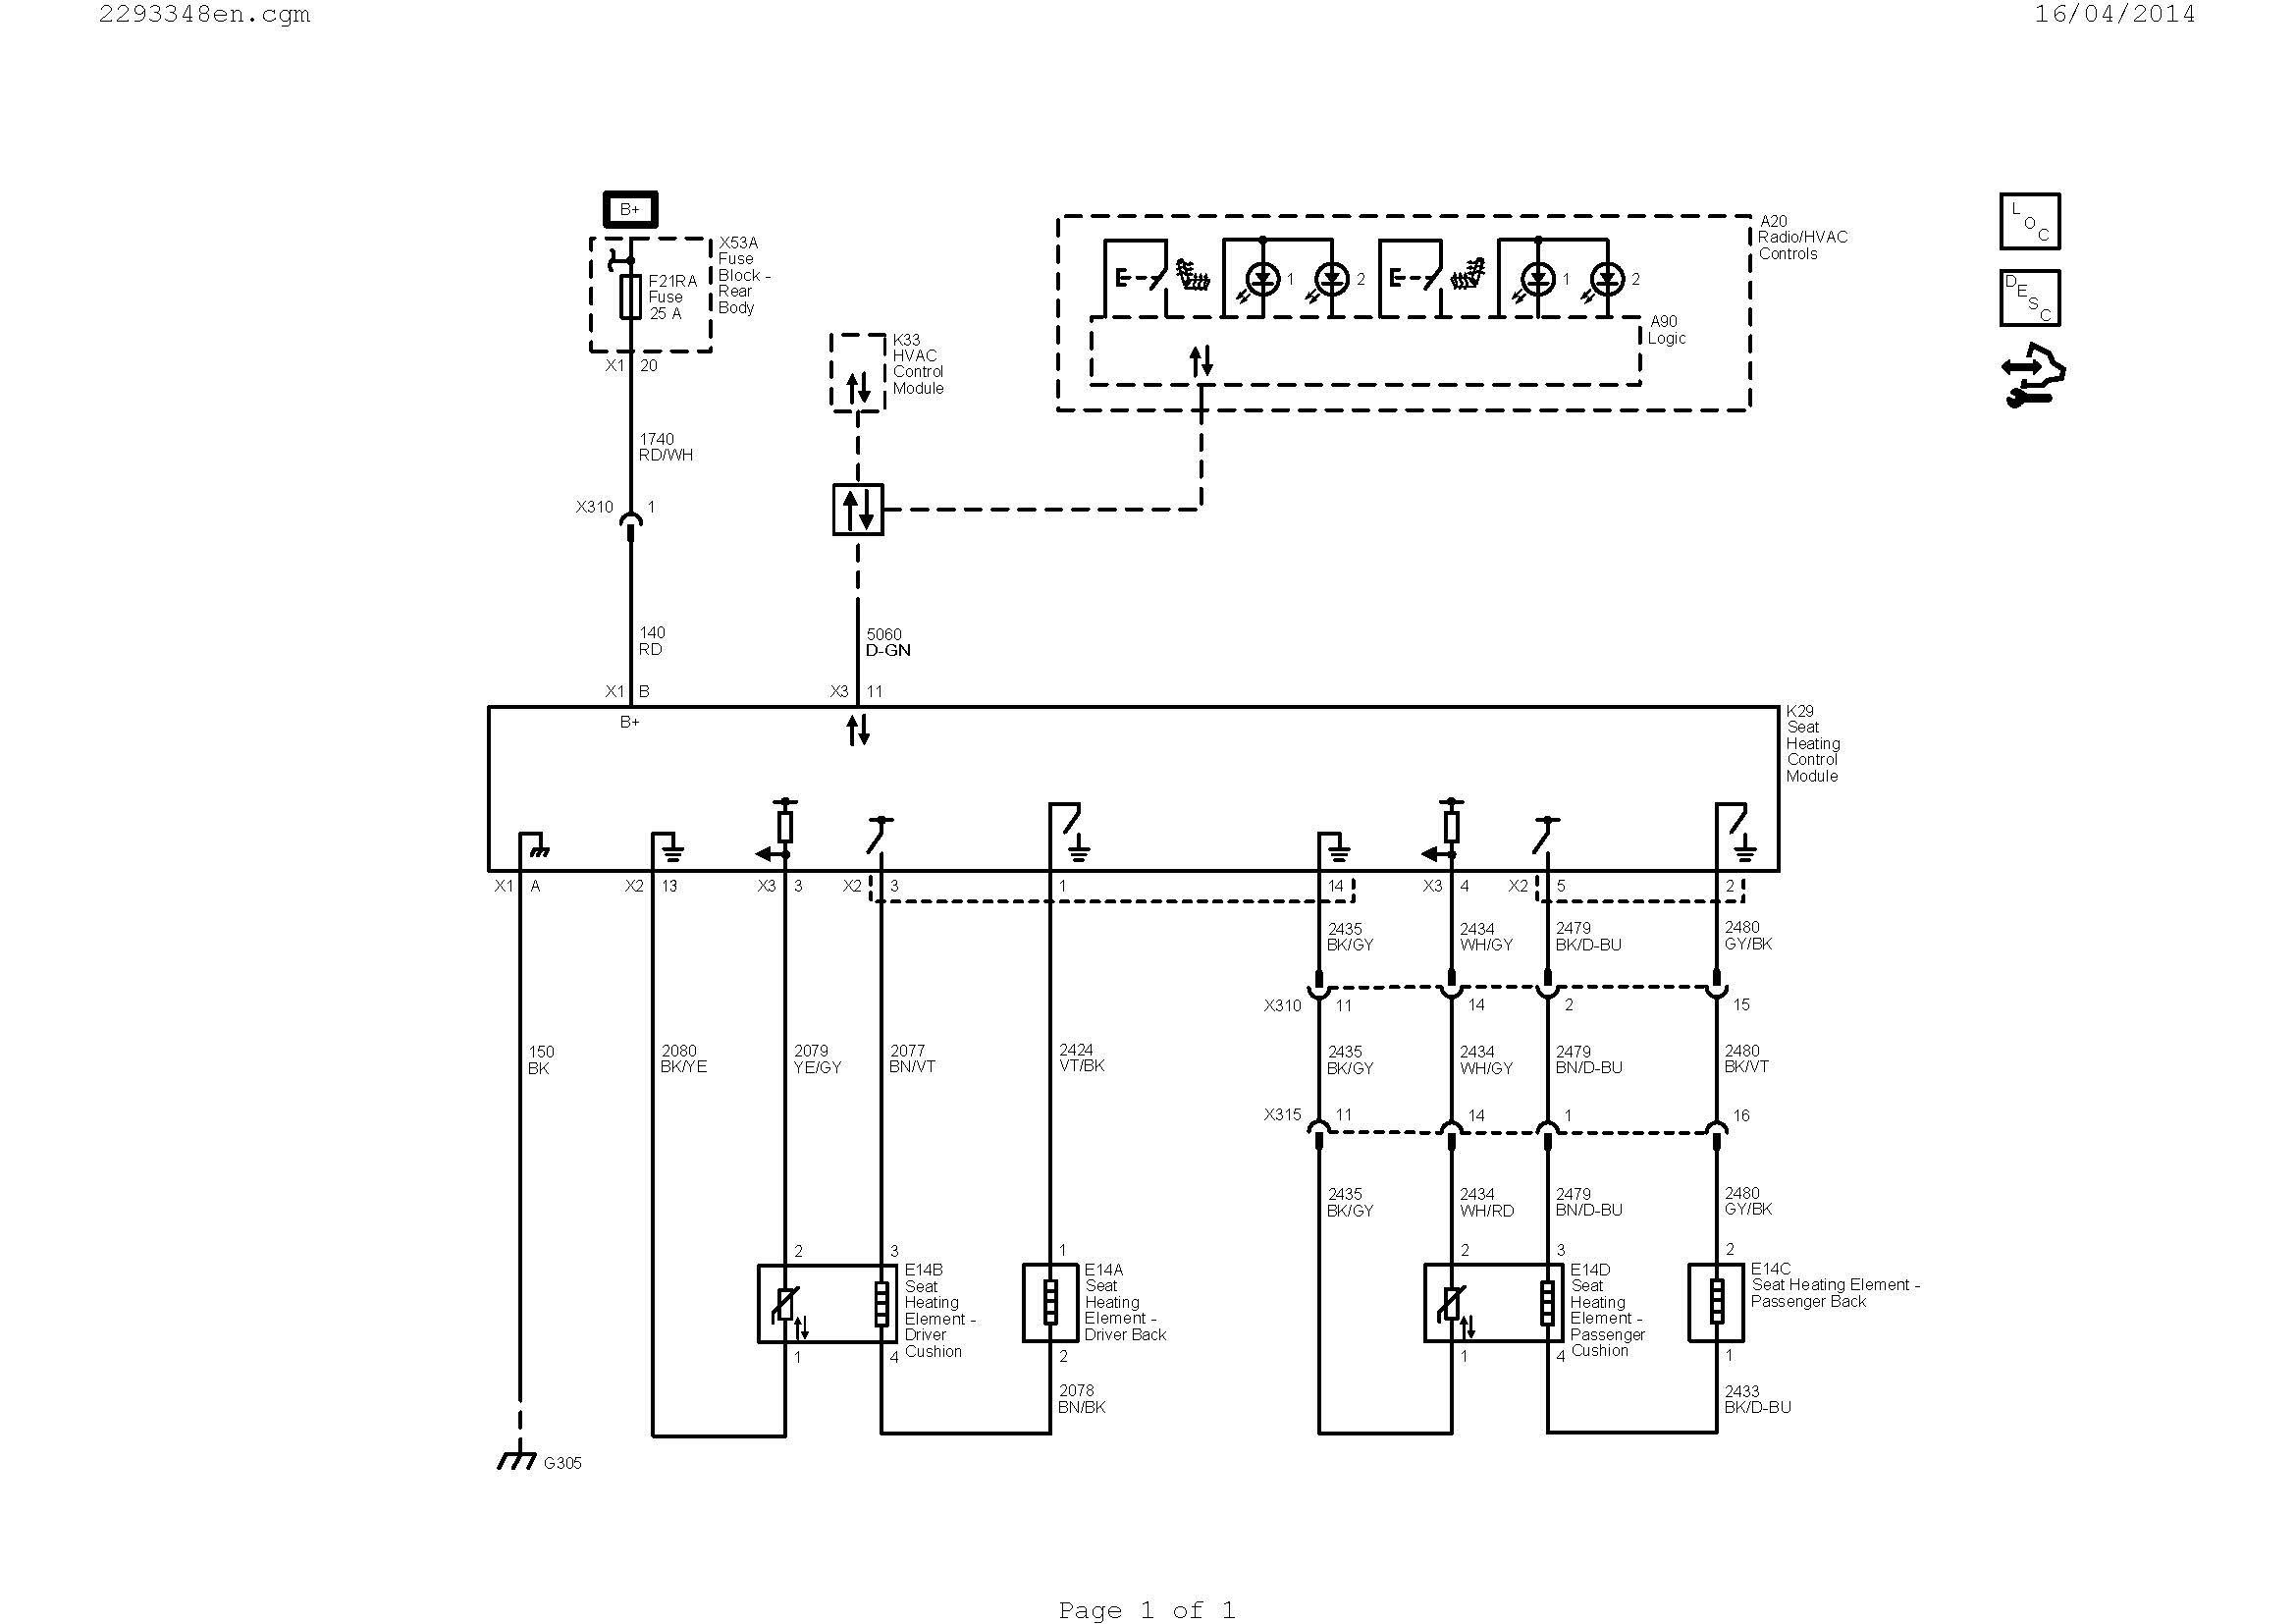 White Rodgers 50E47 843 Wiring Diagram | Schematic Diagram - White Rodgers Gas Valve Wiring Diagram